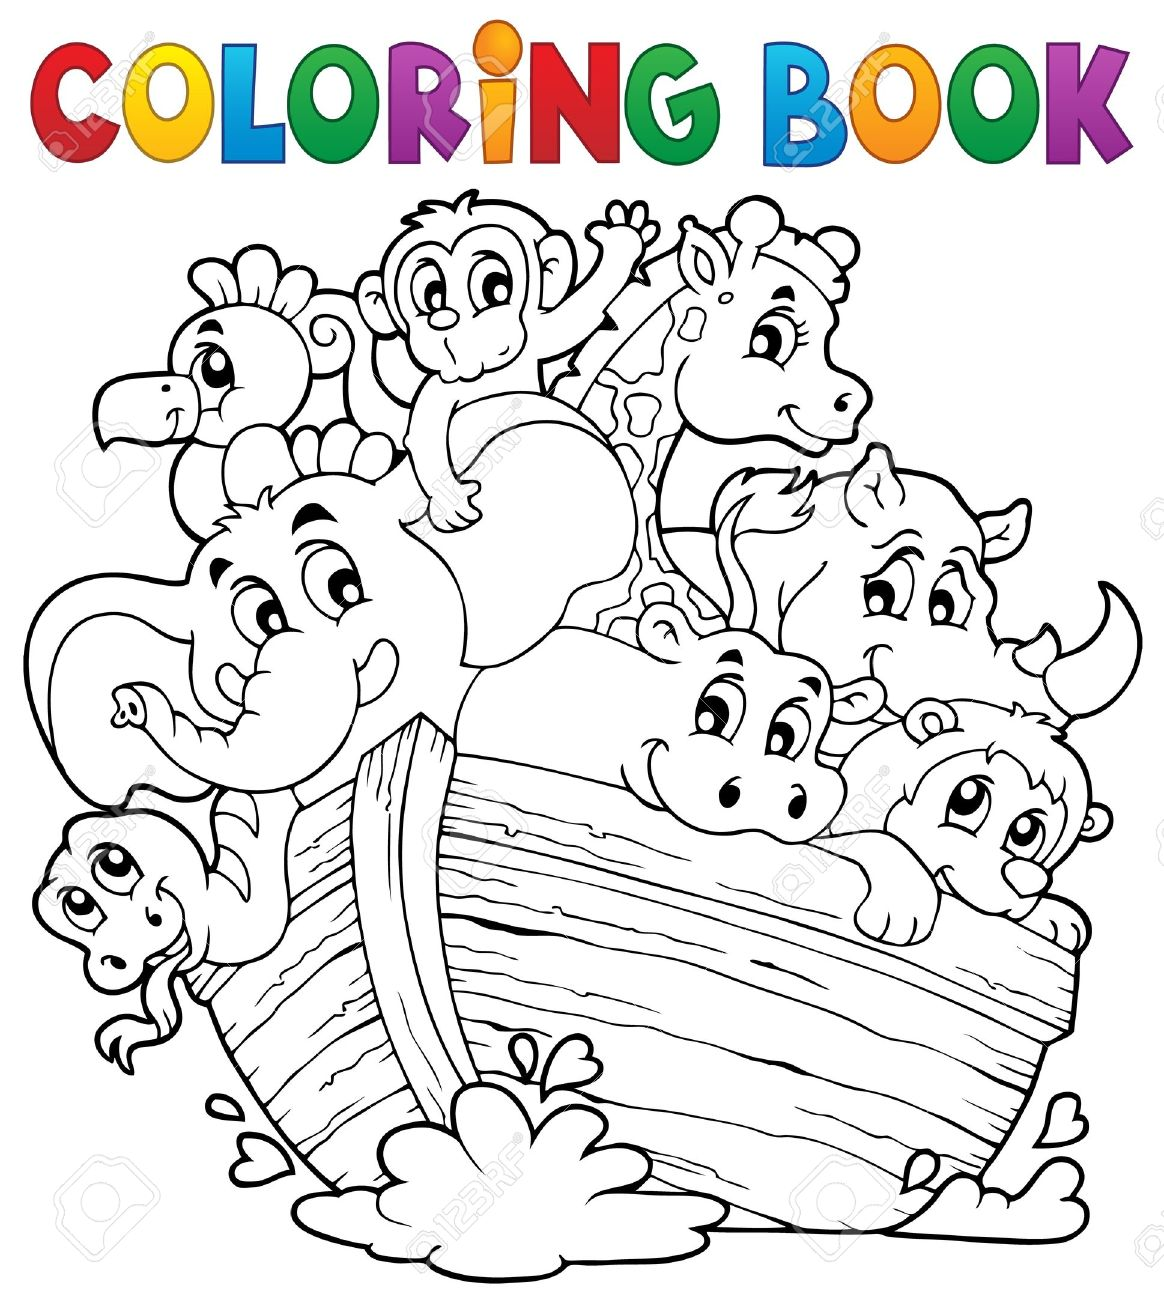 Coloring book Noahs ark Stock Vector - 28029345